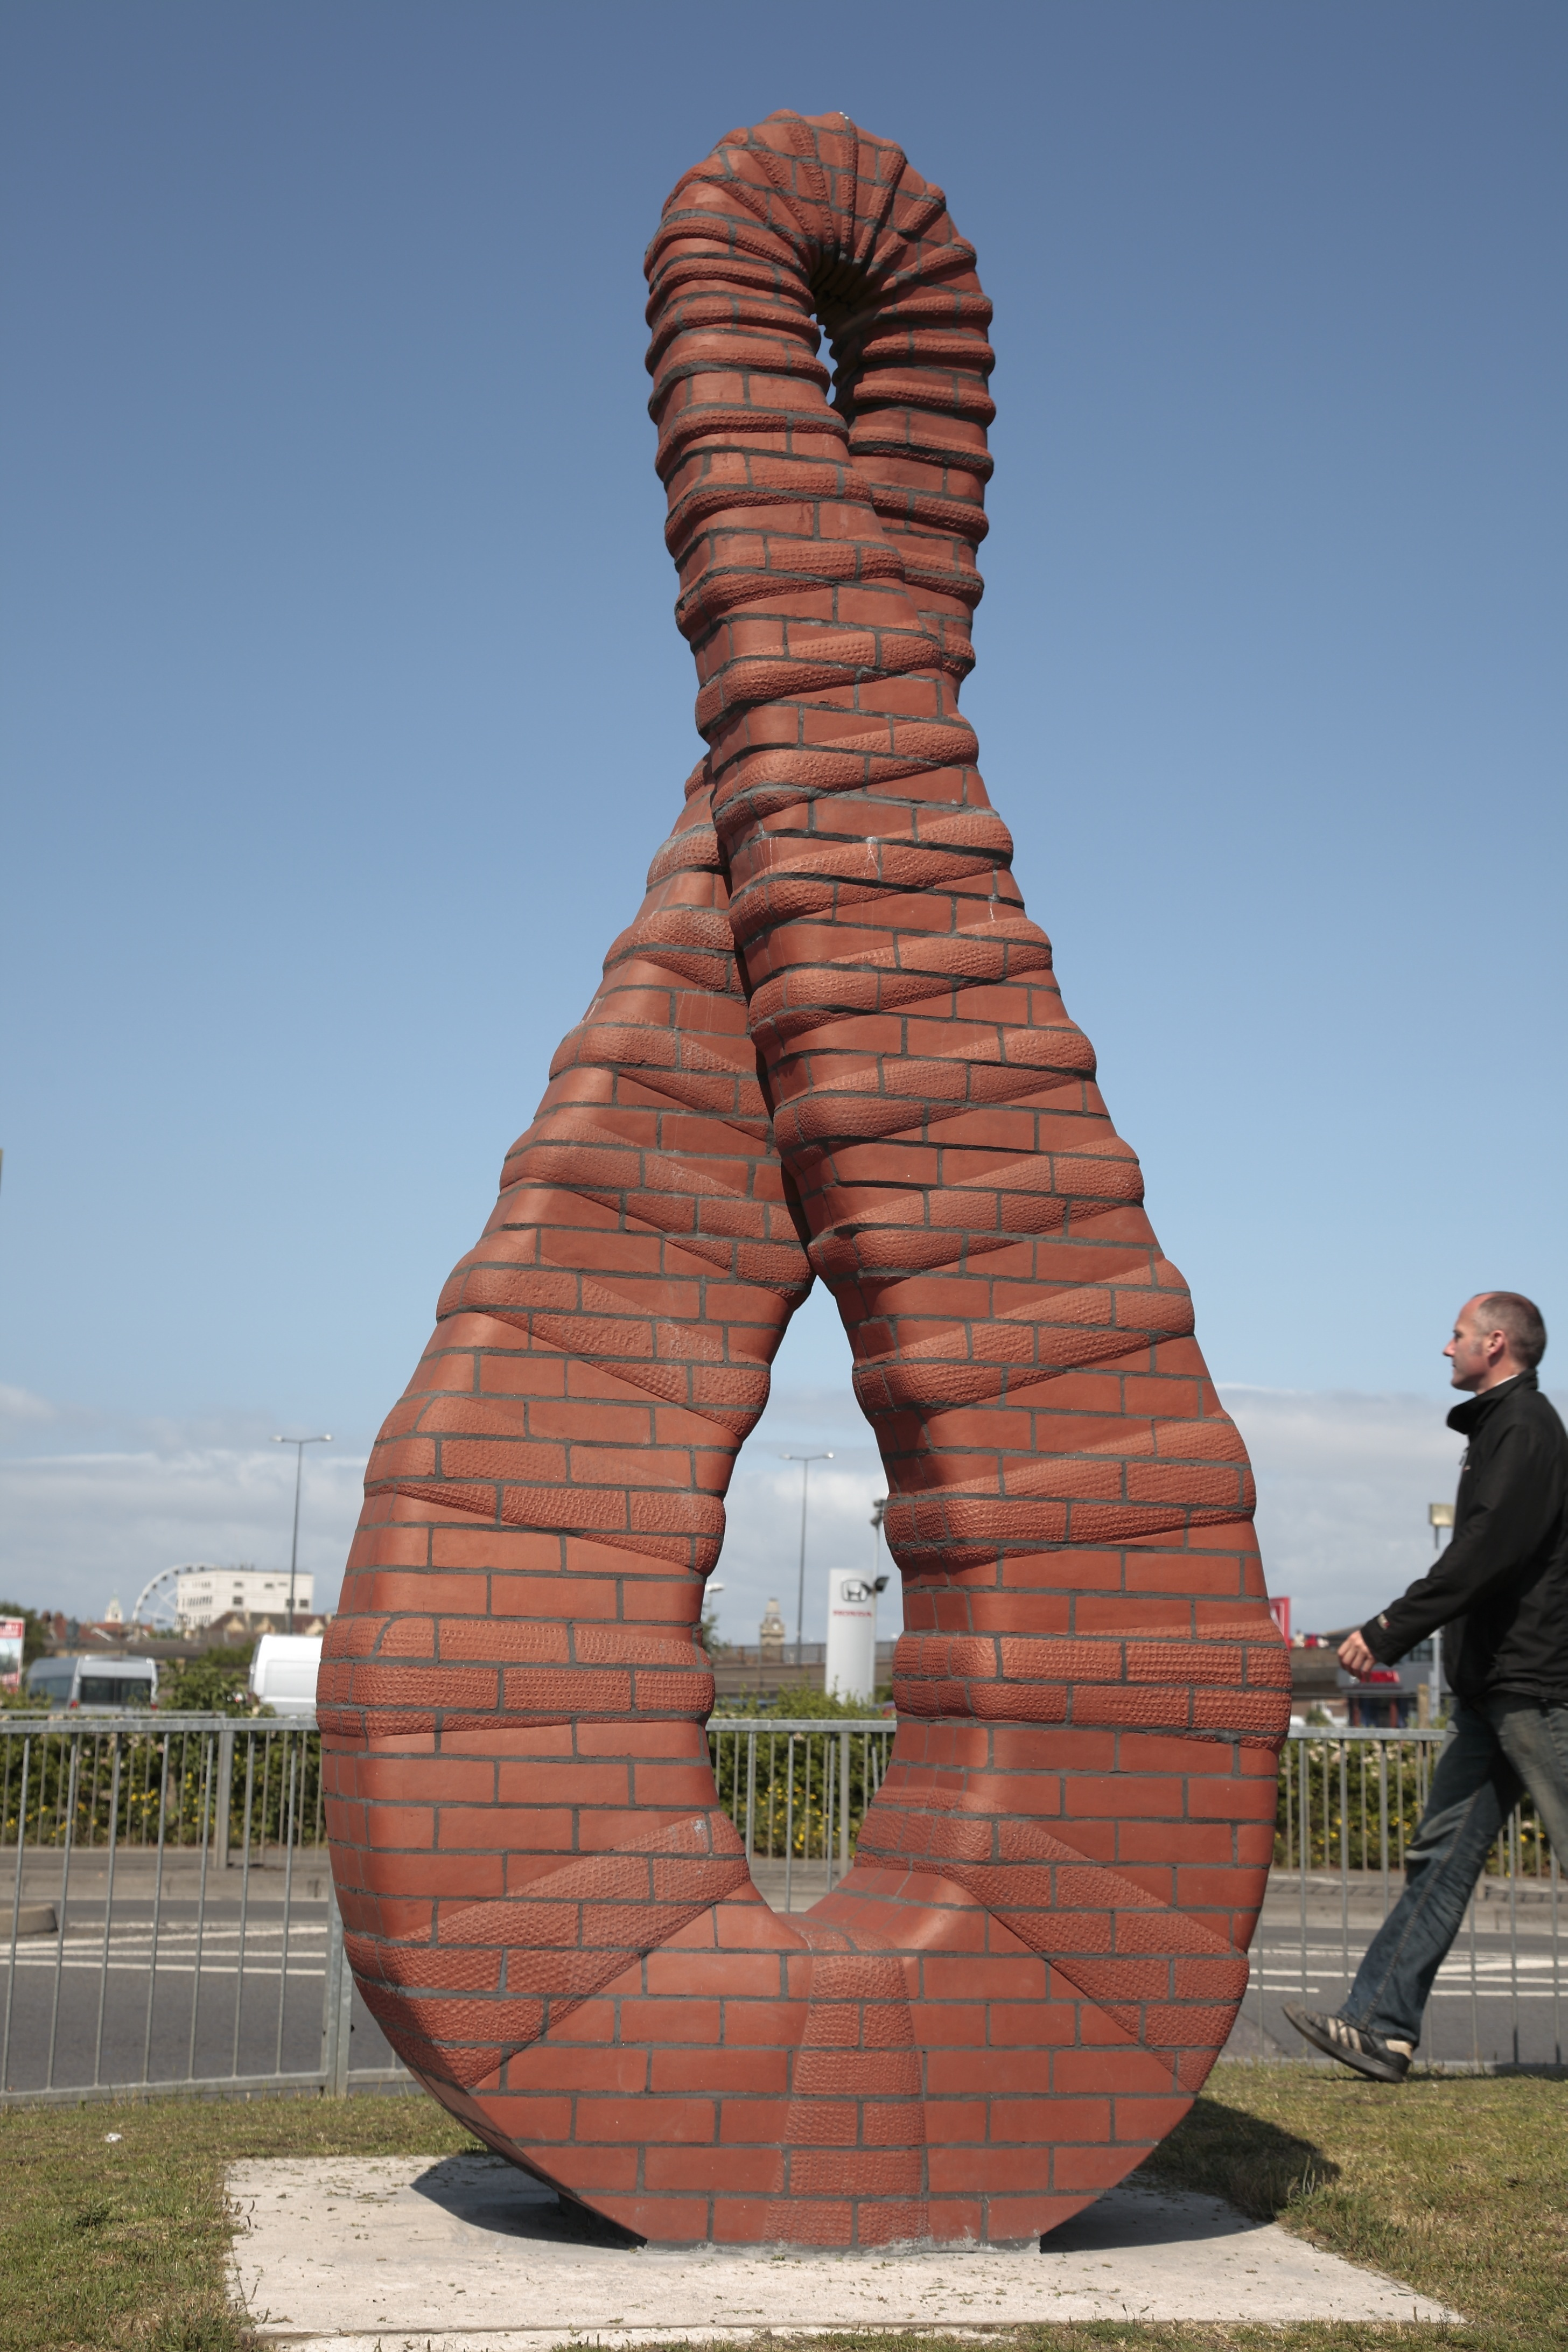 Public Sculpture, Brick Sculpture